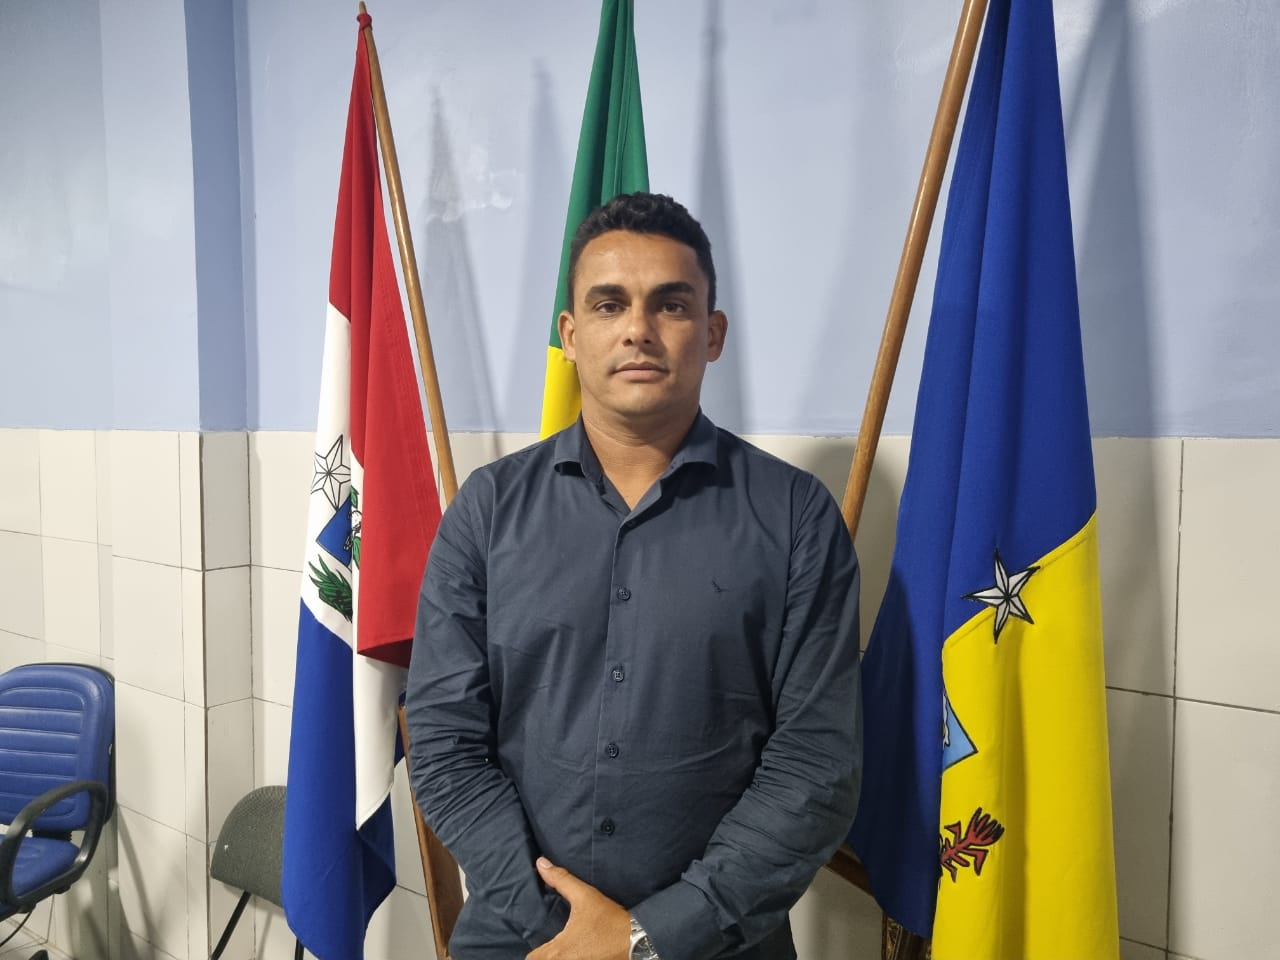 Wagner dos Anjos